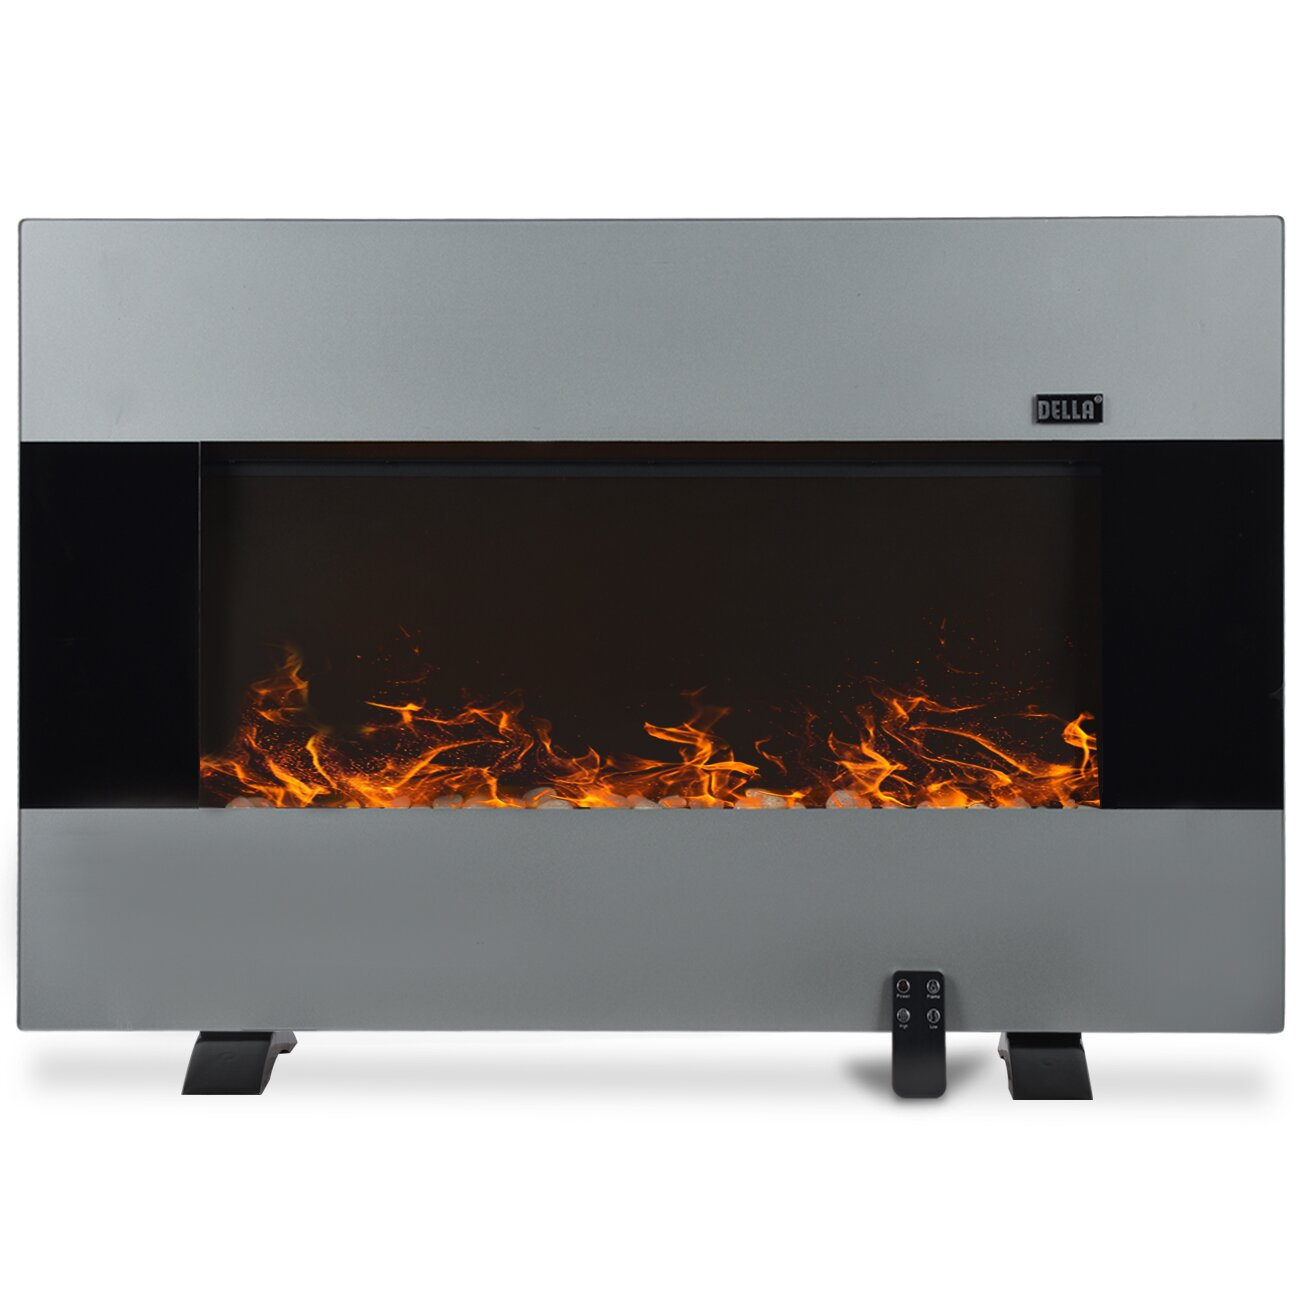 Natural gas wall mounted fireplaces - 1500w Wall Mount Electric Fireplace